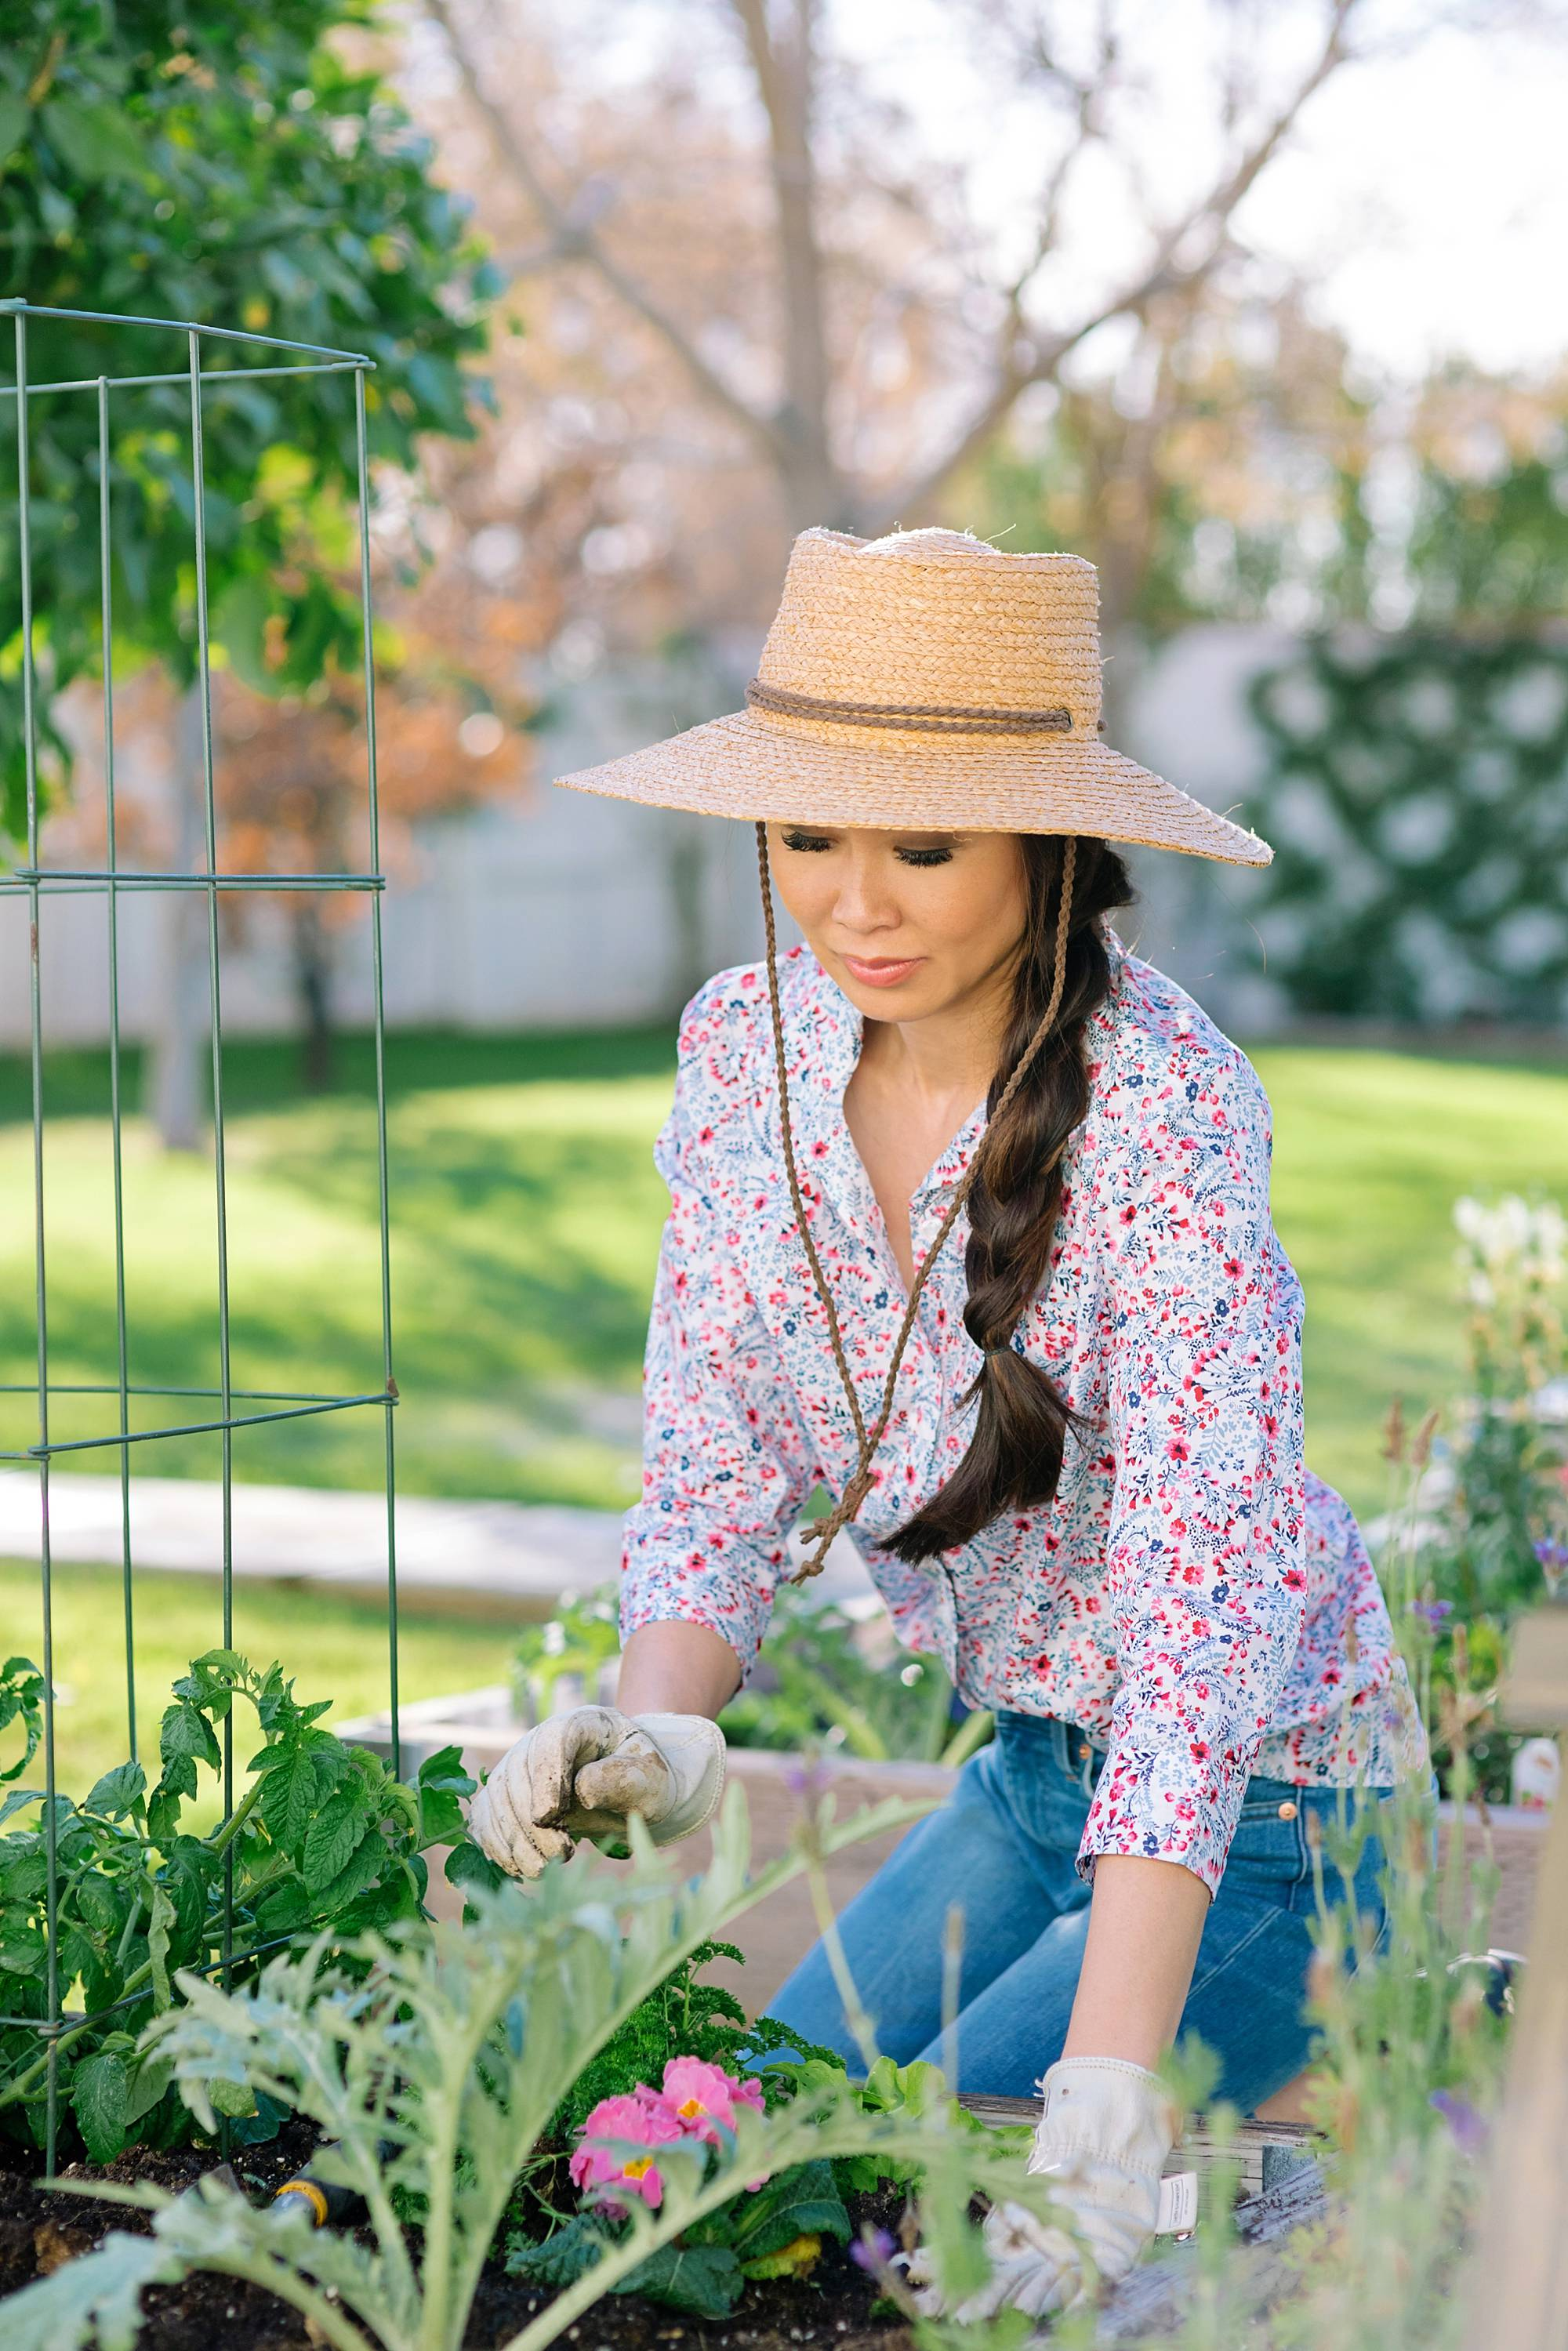 garden lifestyle blogger Diana Elizabeth in backyard garden raised garden beds in phoenix arizona wearing floral print shirt